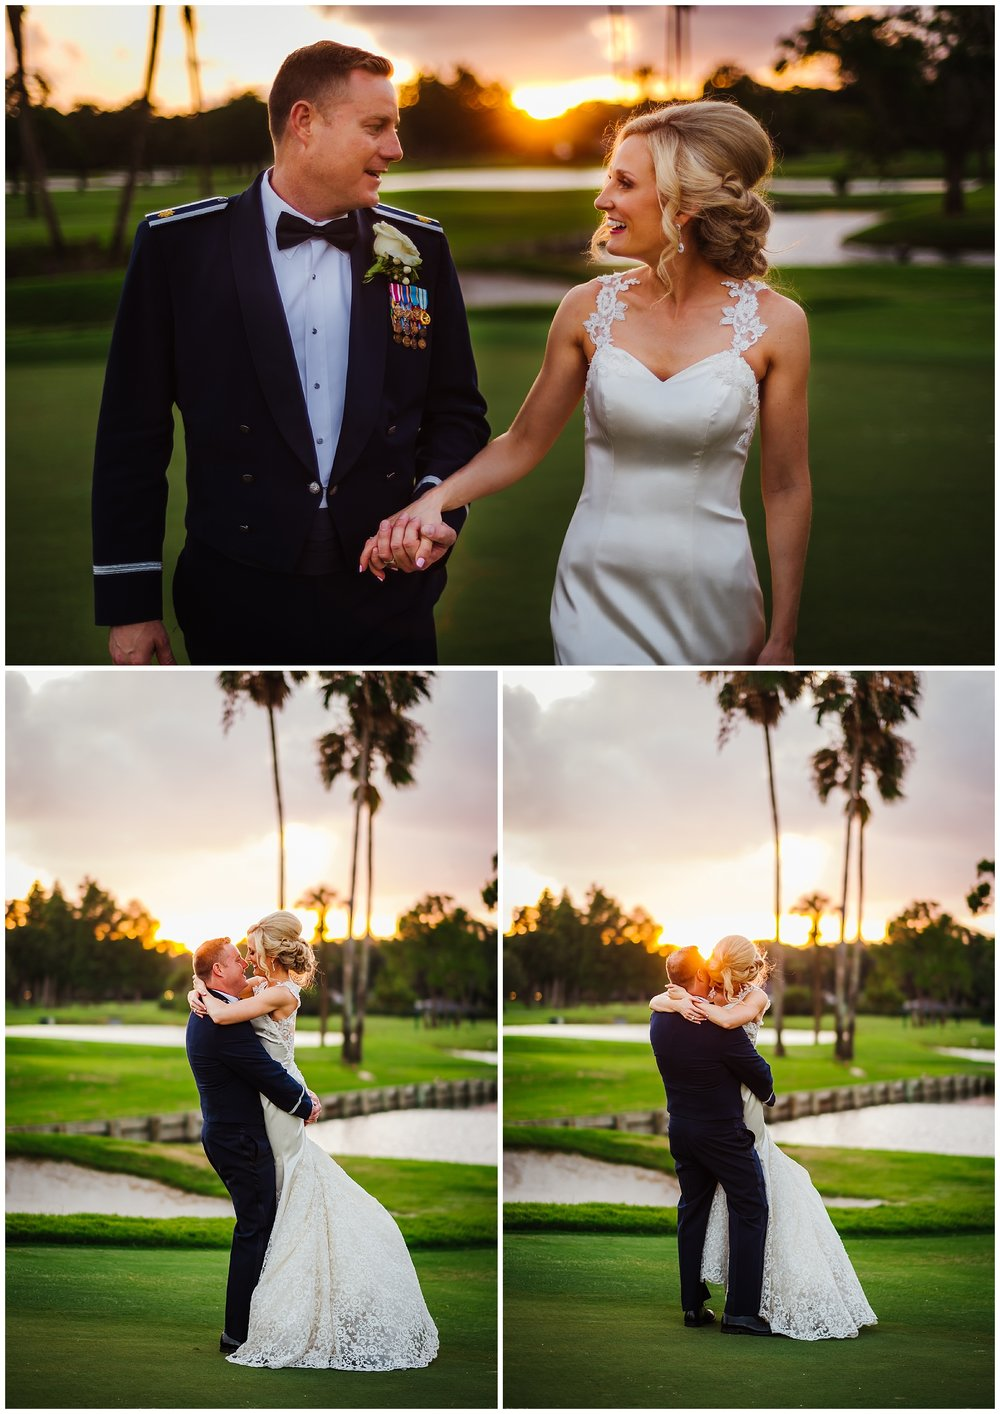 tampa-wedding-photographer-sleeves-palma-ceia-country-club-golf-course-sunset-luxury_0101.jpg